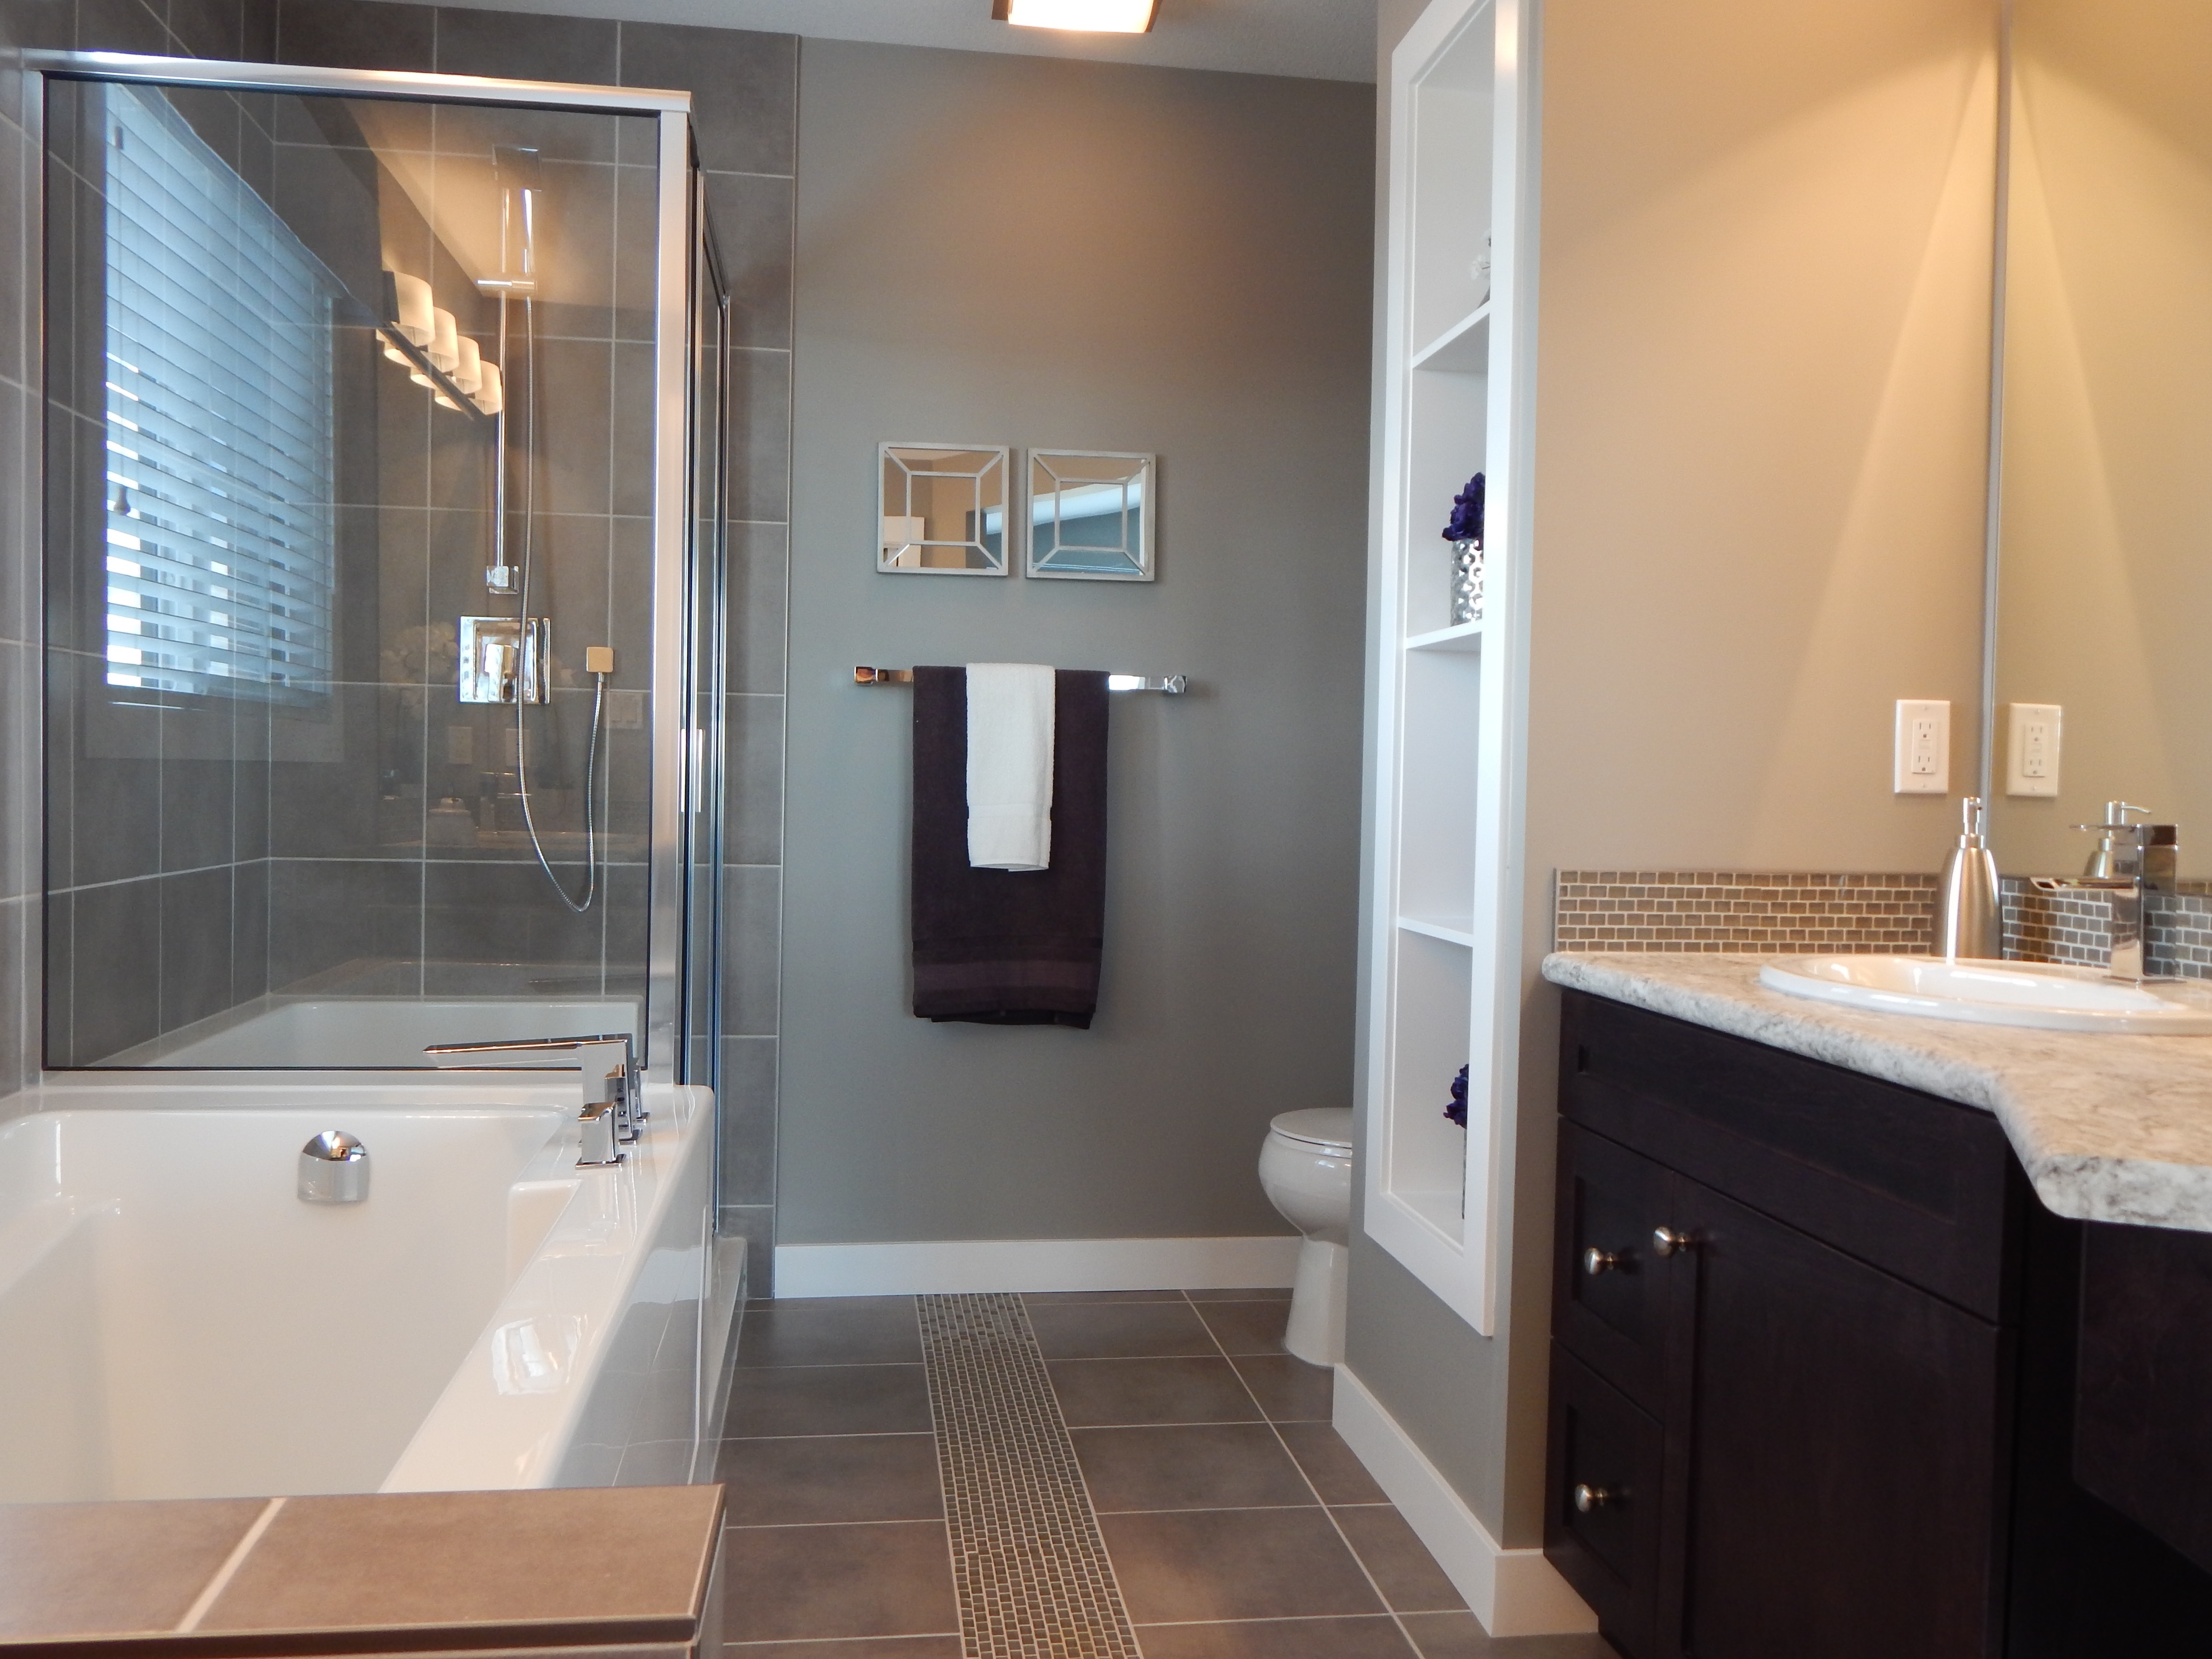 modern-bathroom-interior-with-shower-cabin-and-tub